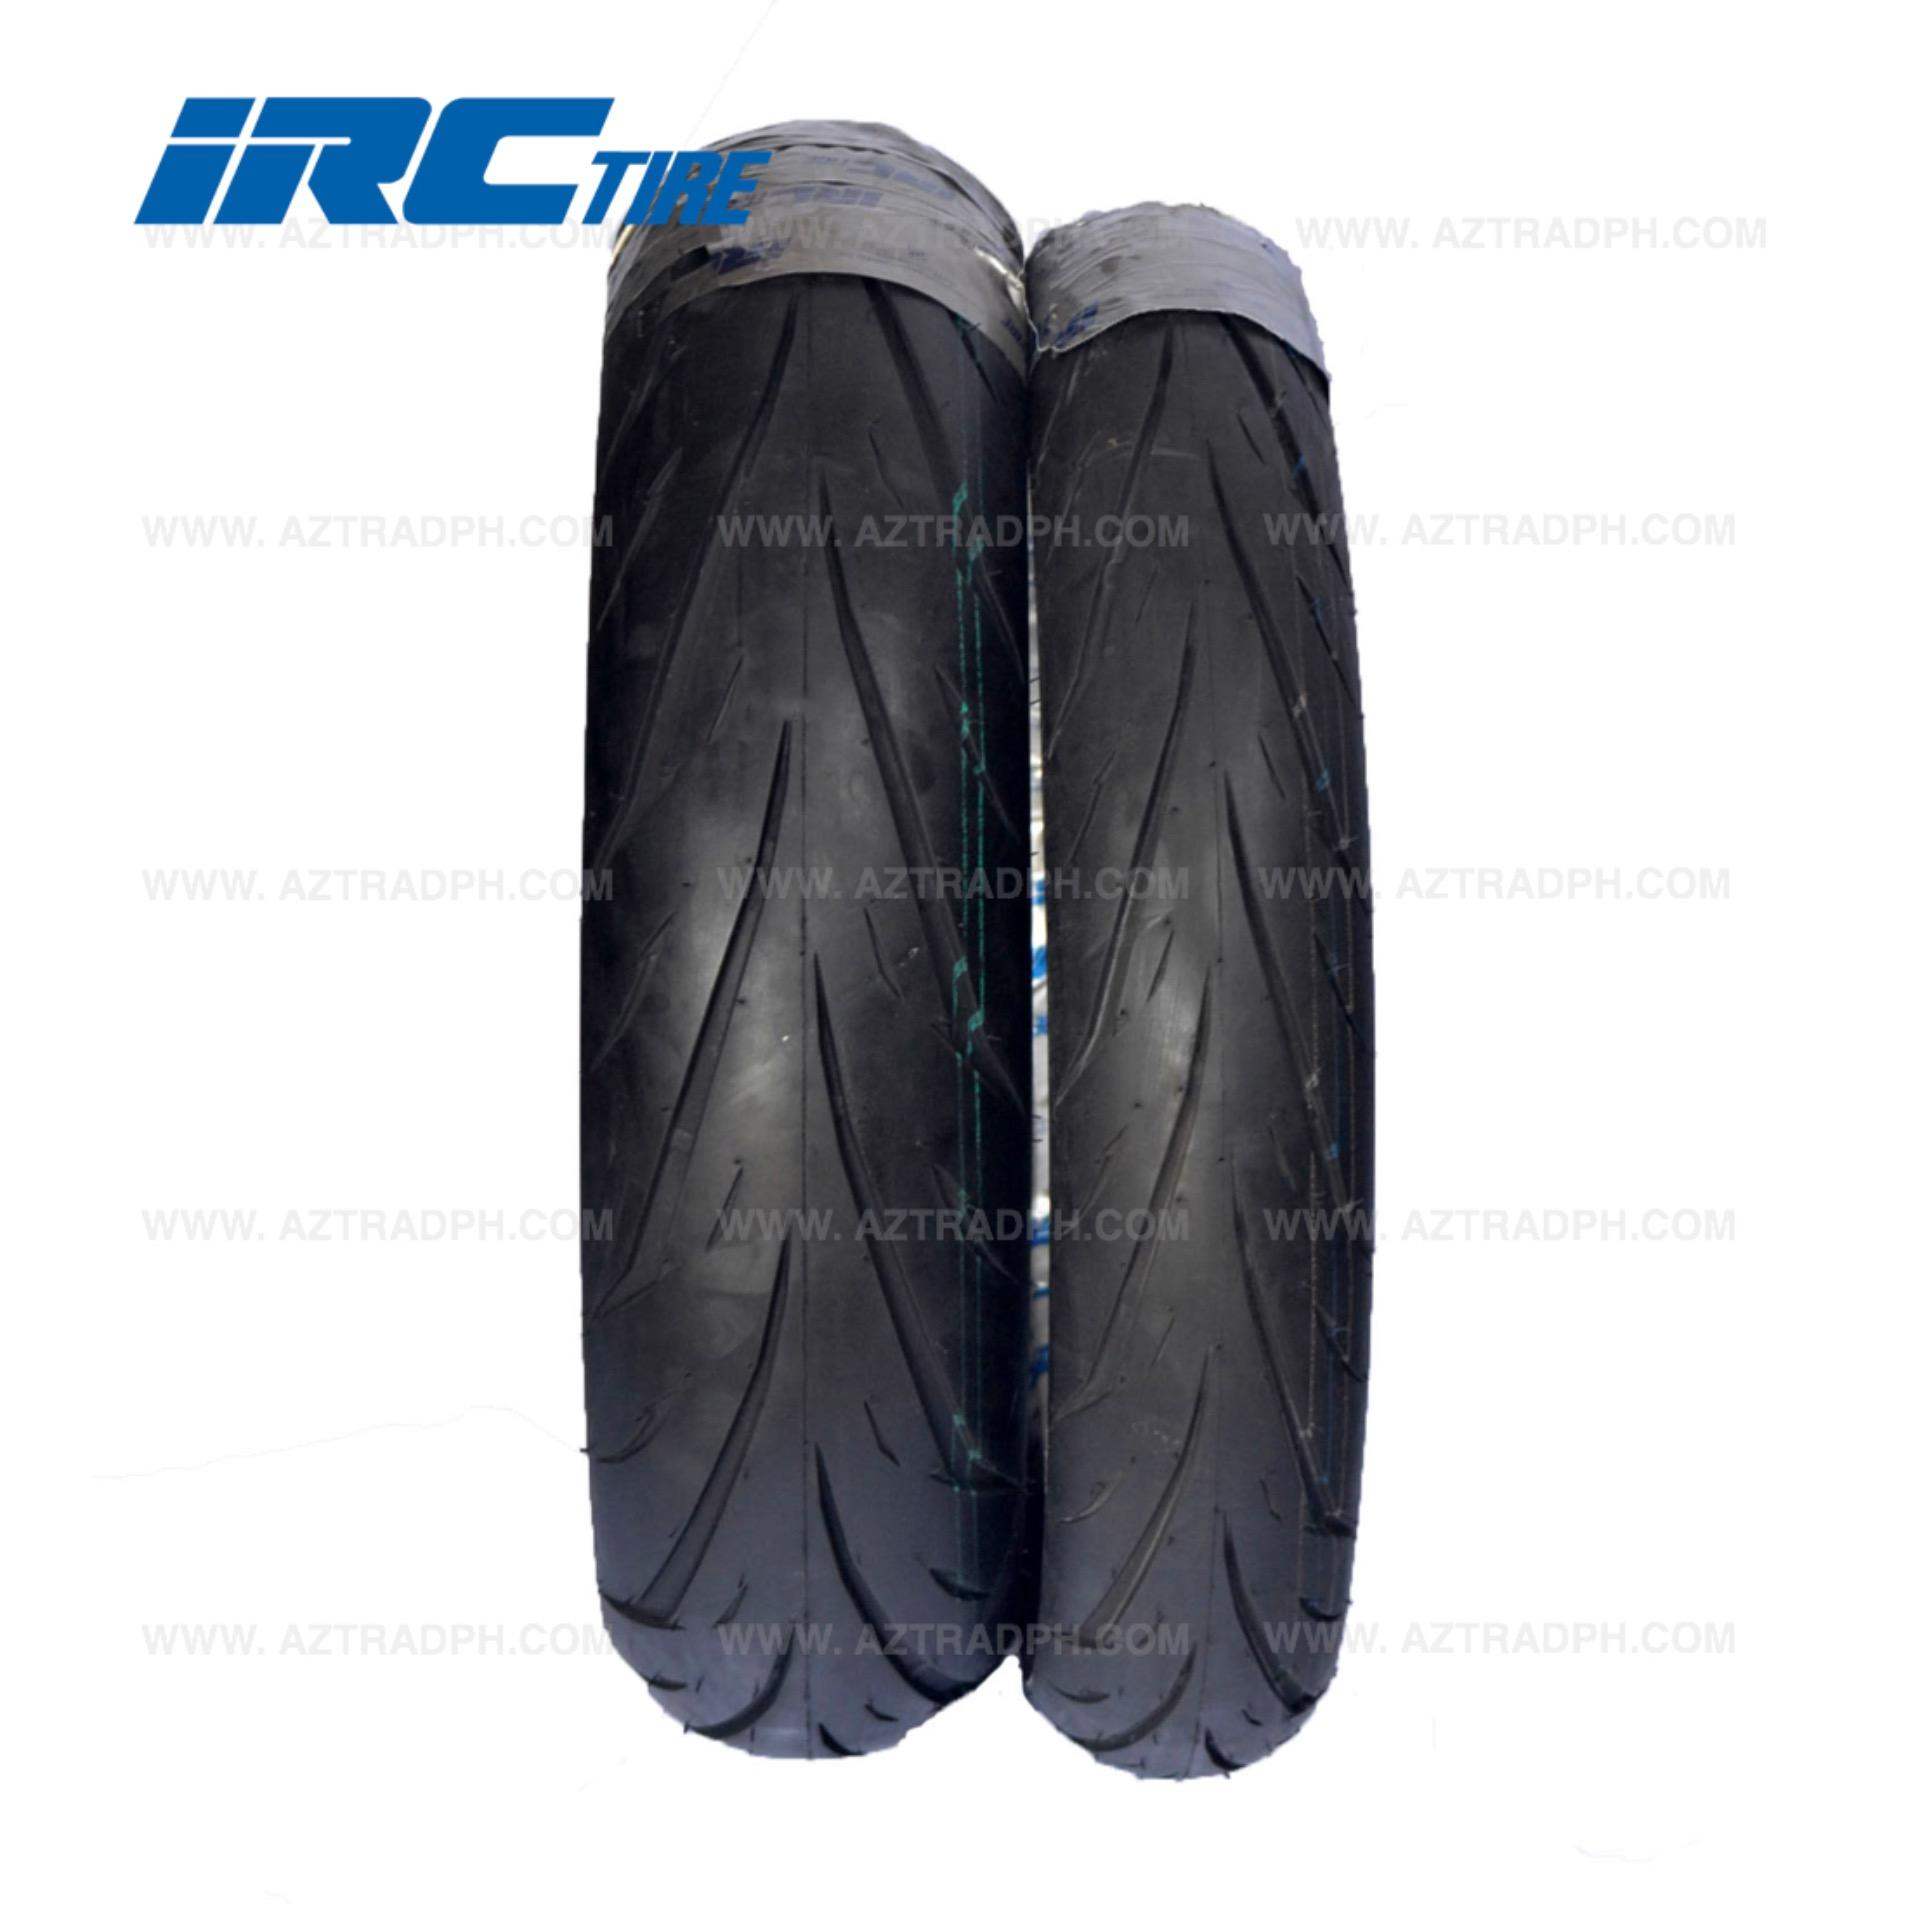 Philippines Irc Exato Nr88 Suzuki Gixxer 150 Kawasaki Z250l Front 110 70 17 Tubeless And Rear Tires Bundle